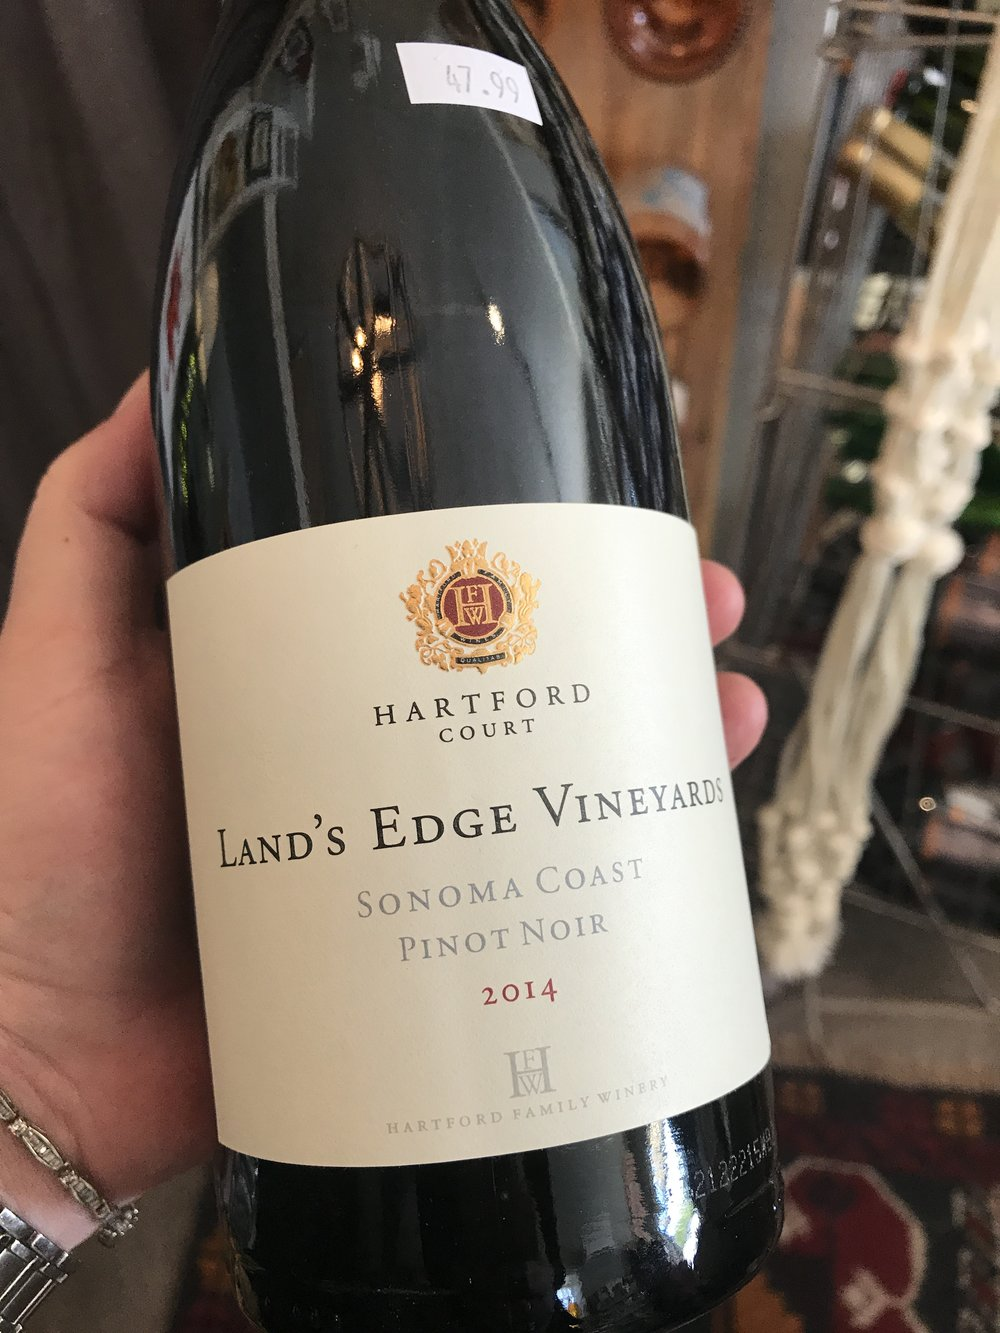 "2014 Hartford Court ""Land's Edge"", Sonoma Coast:    ""The only 2014 tasted was the early-bottled 2014 Pinot Noir Land's Edge Vineyards, which comes from a vineyard four miles from the Pacific Ocean. Aged in 32% new French oak, the wine displays raspberry and blueberry fruit, damp earth, fresh porcini mushrooms and plenty of minerality. This is a juicy, tightly knit, but concentrated and promising Pinot Noir that has that forward fruit of this vintage well displayed."" - 92 points  Robert Parker,  The Wine Advocate , October 2015. 47.99"